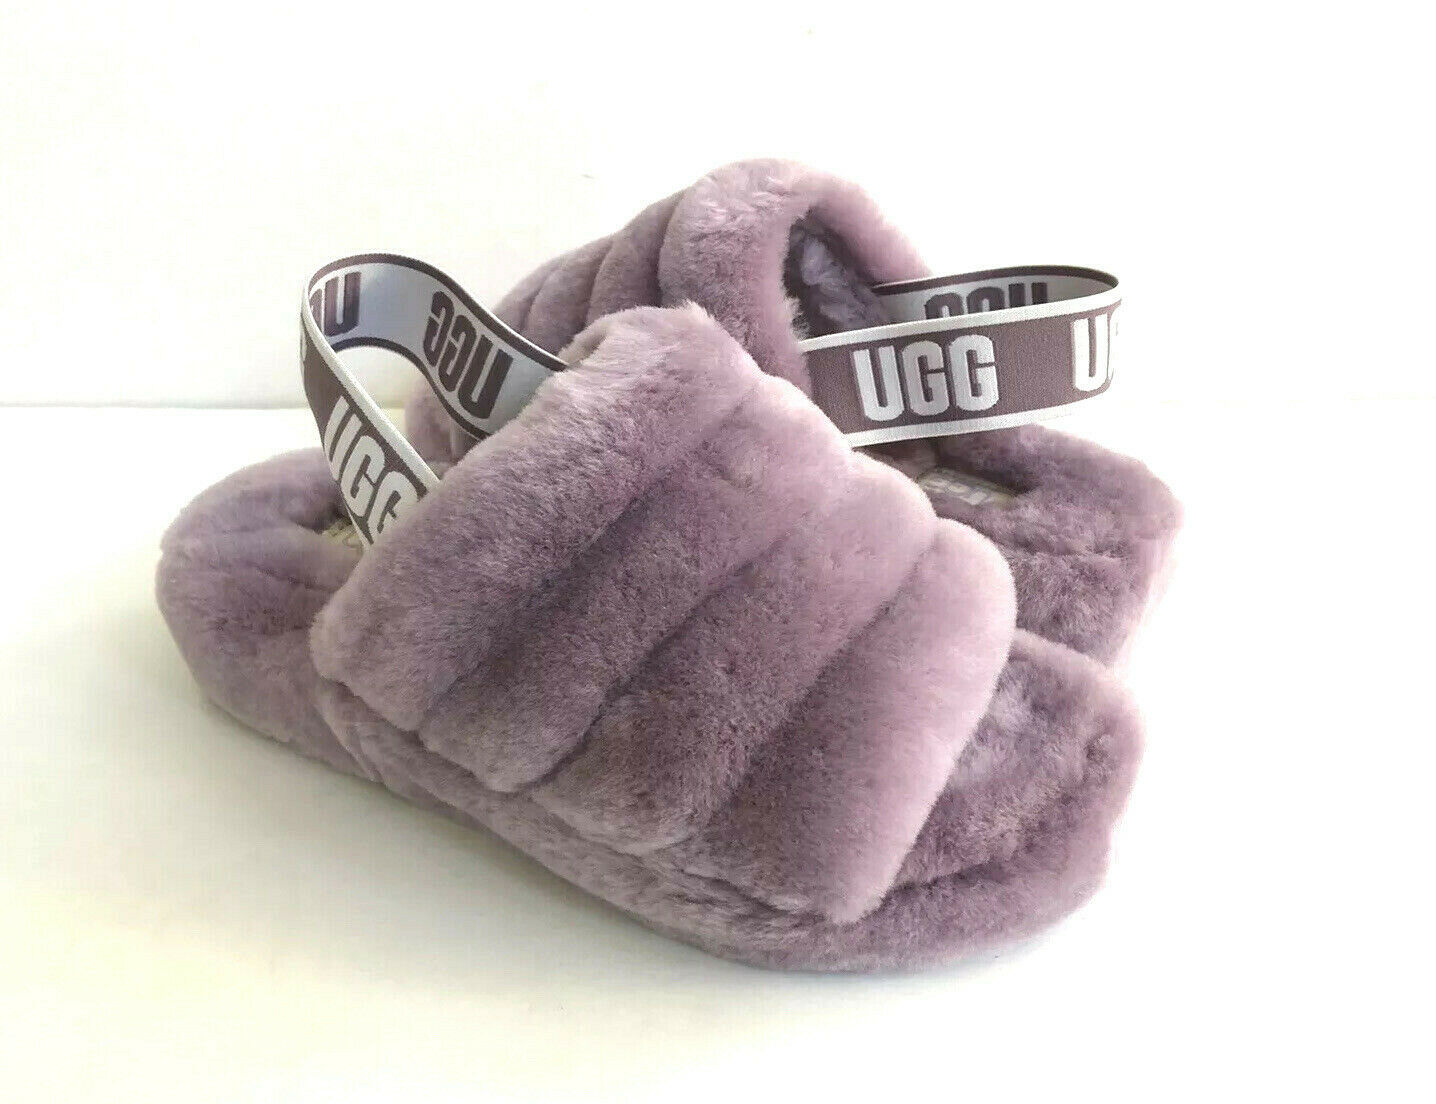 Primary image for UGG FLUFF YEAH SLIDE SHADOW MOCASSIN SLIP ON SANDAL US 10 / EU 41 / UK 8